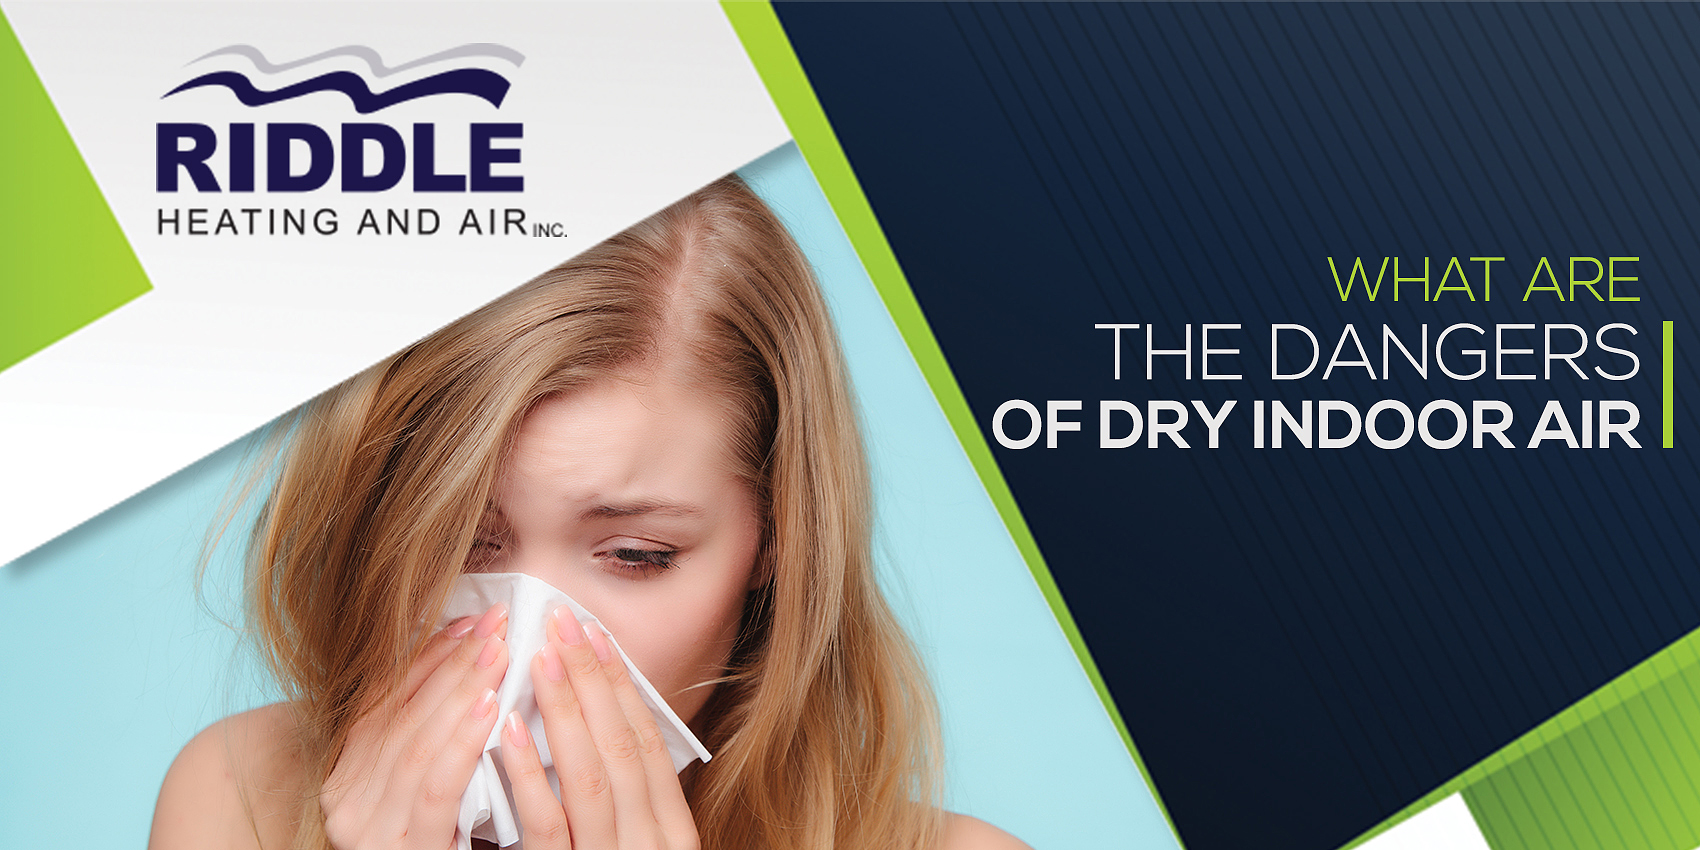 What Are The Dangers of Dry Indoor Air?